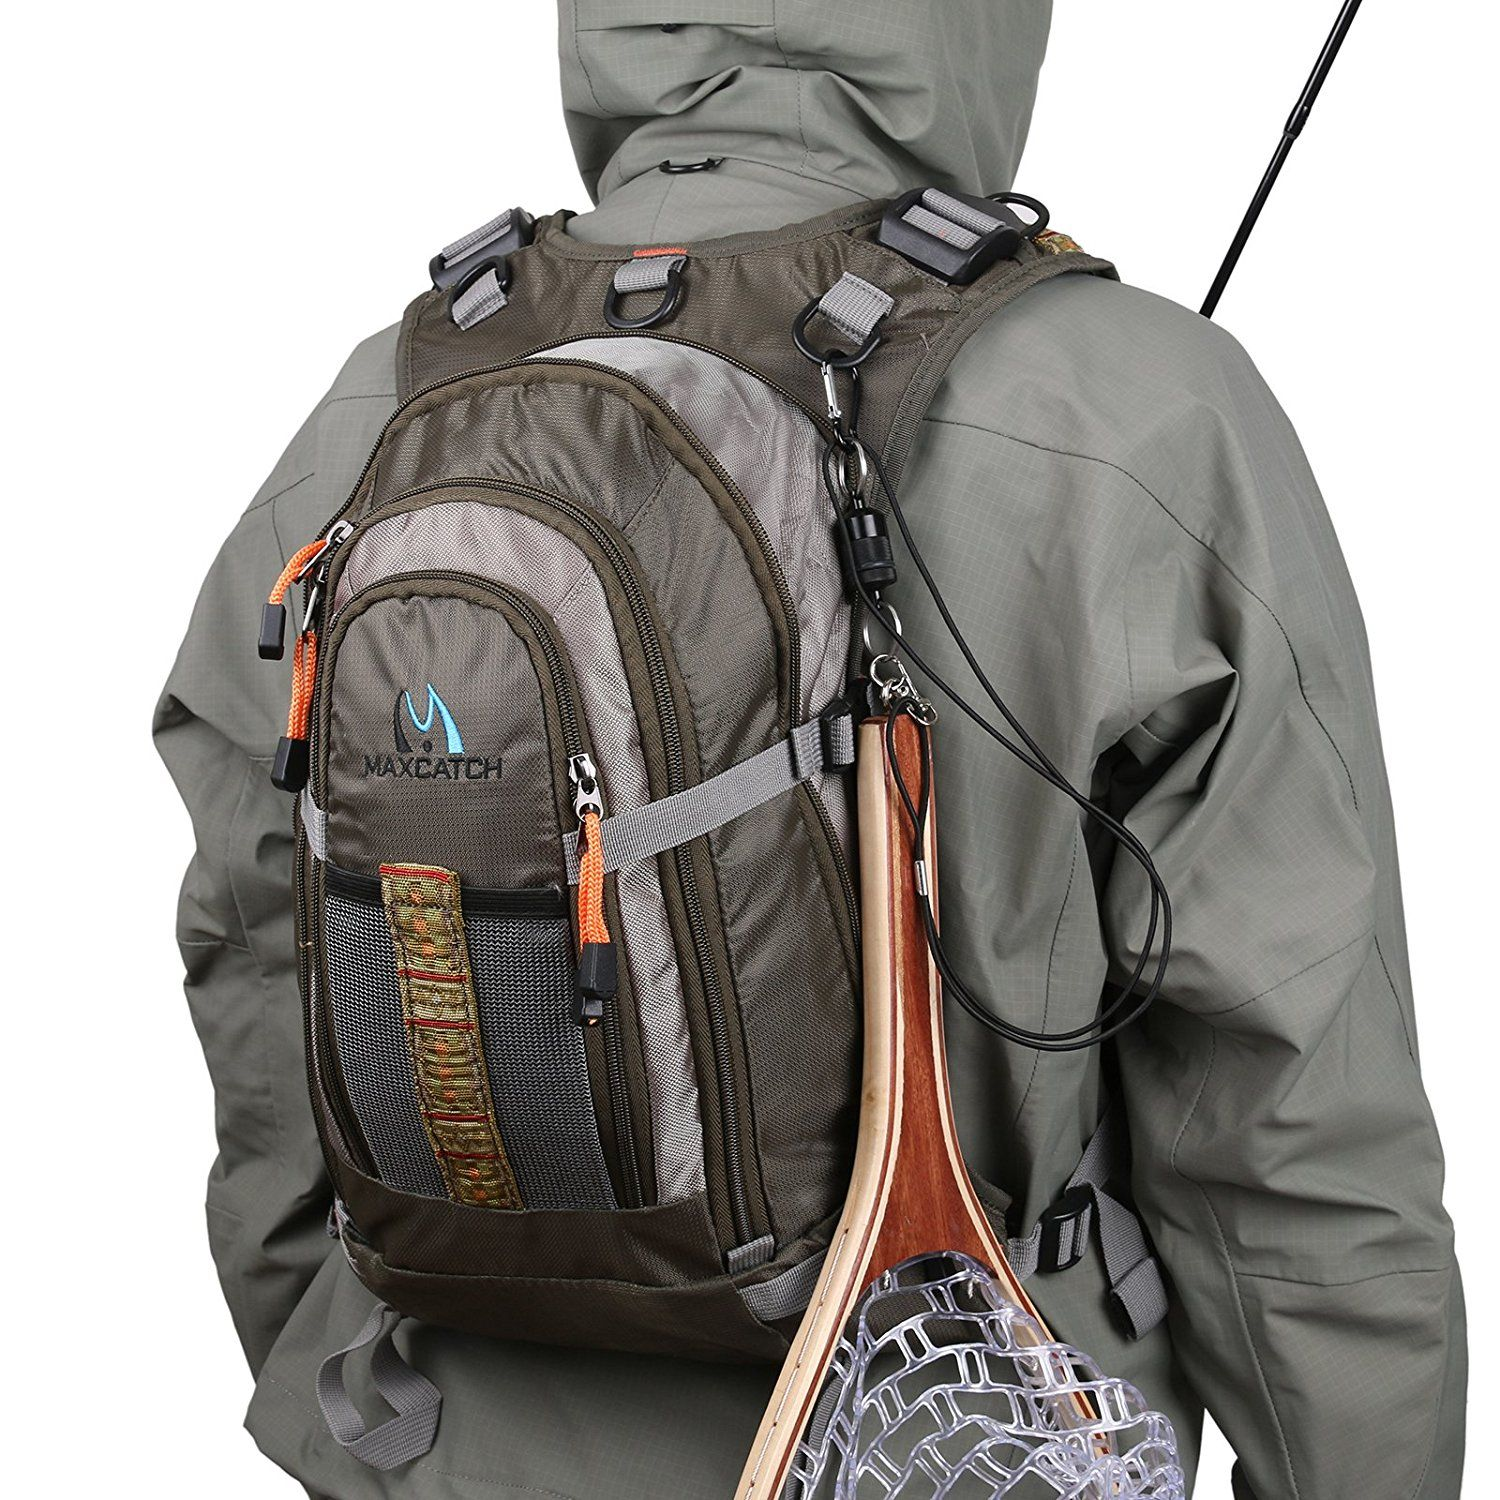 Amazon Com Maxcatch Fly Fishing Backpack Adjustable Size Mesh Fishing Vest Pack Sports Outdoors Fishing Backpack Fishing Vest Fishing Gear Gifts